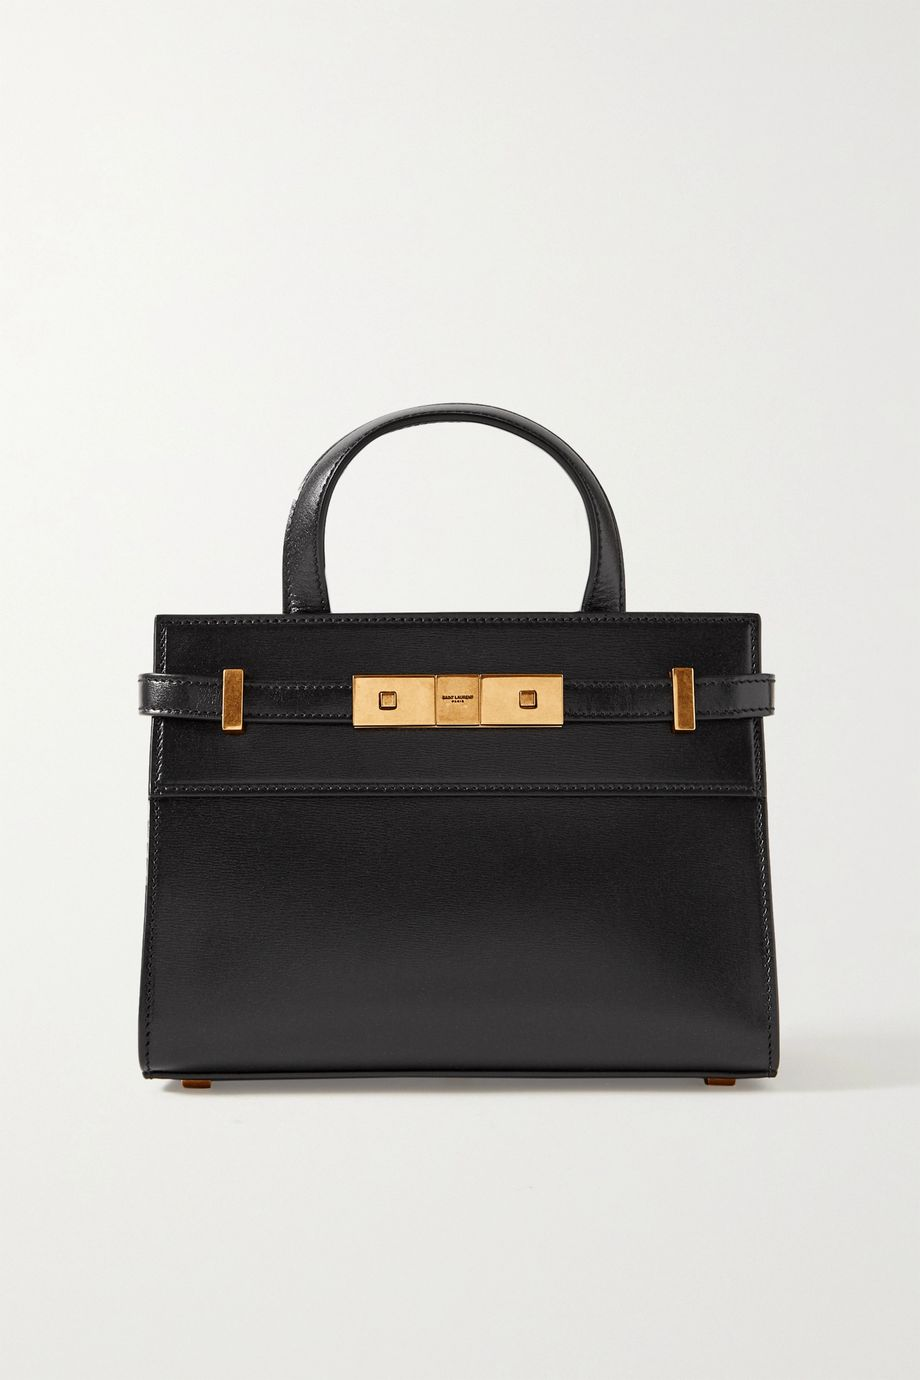 SAINT LAURENT Manhattan micro leather tote